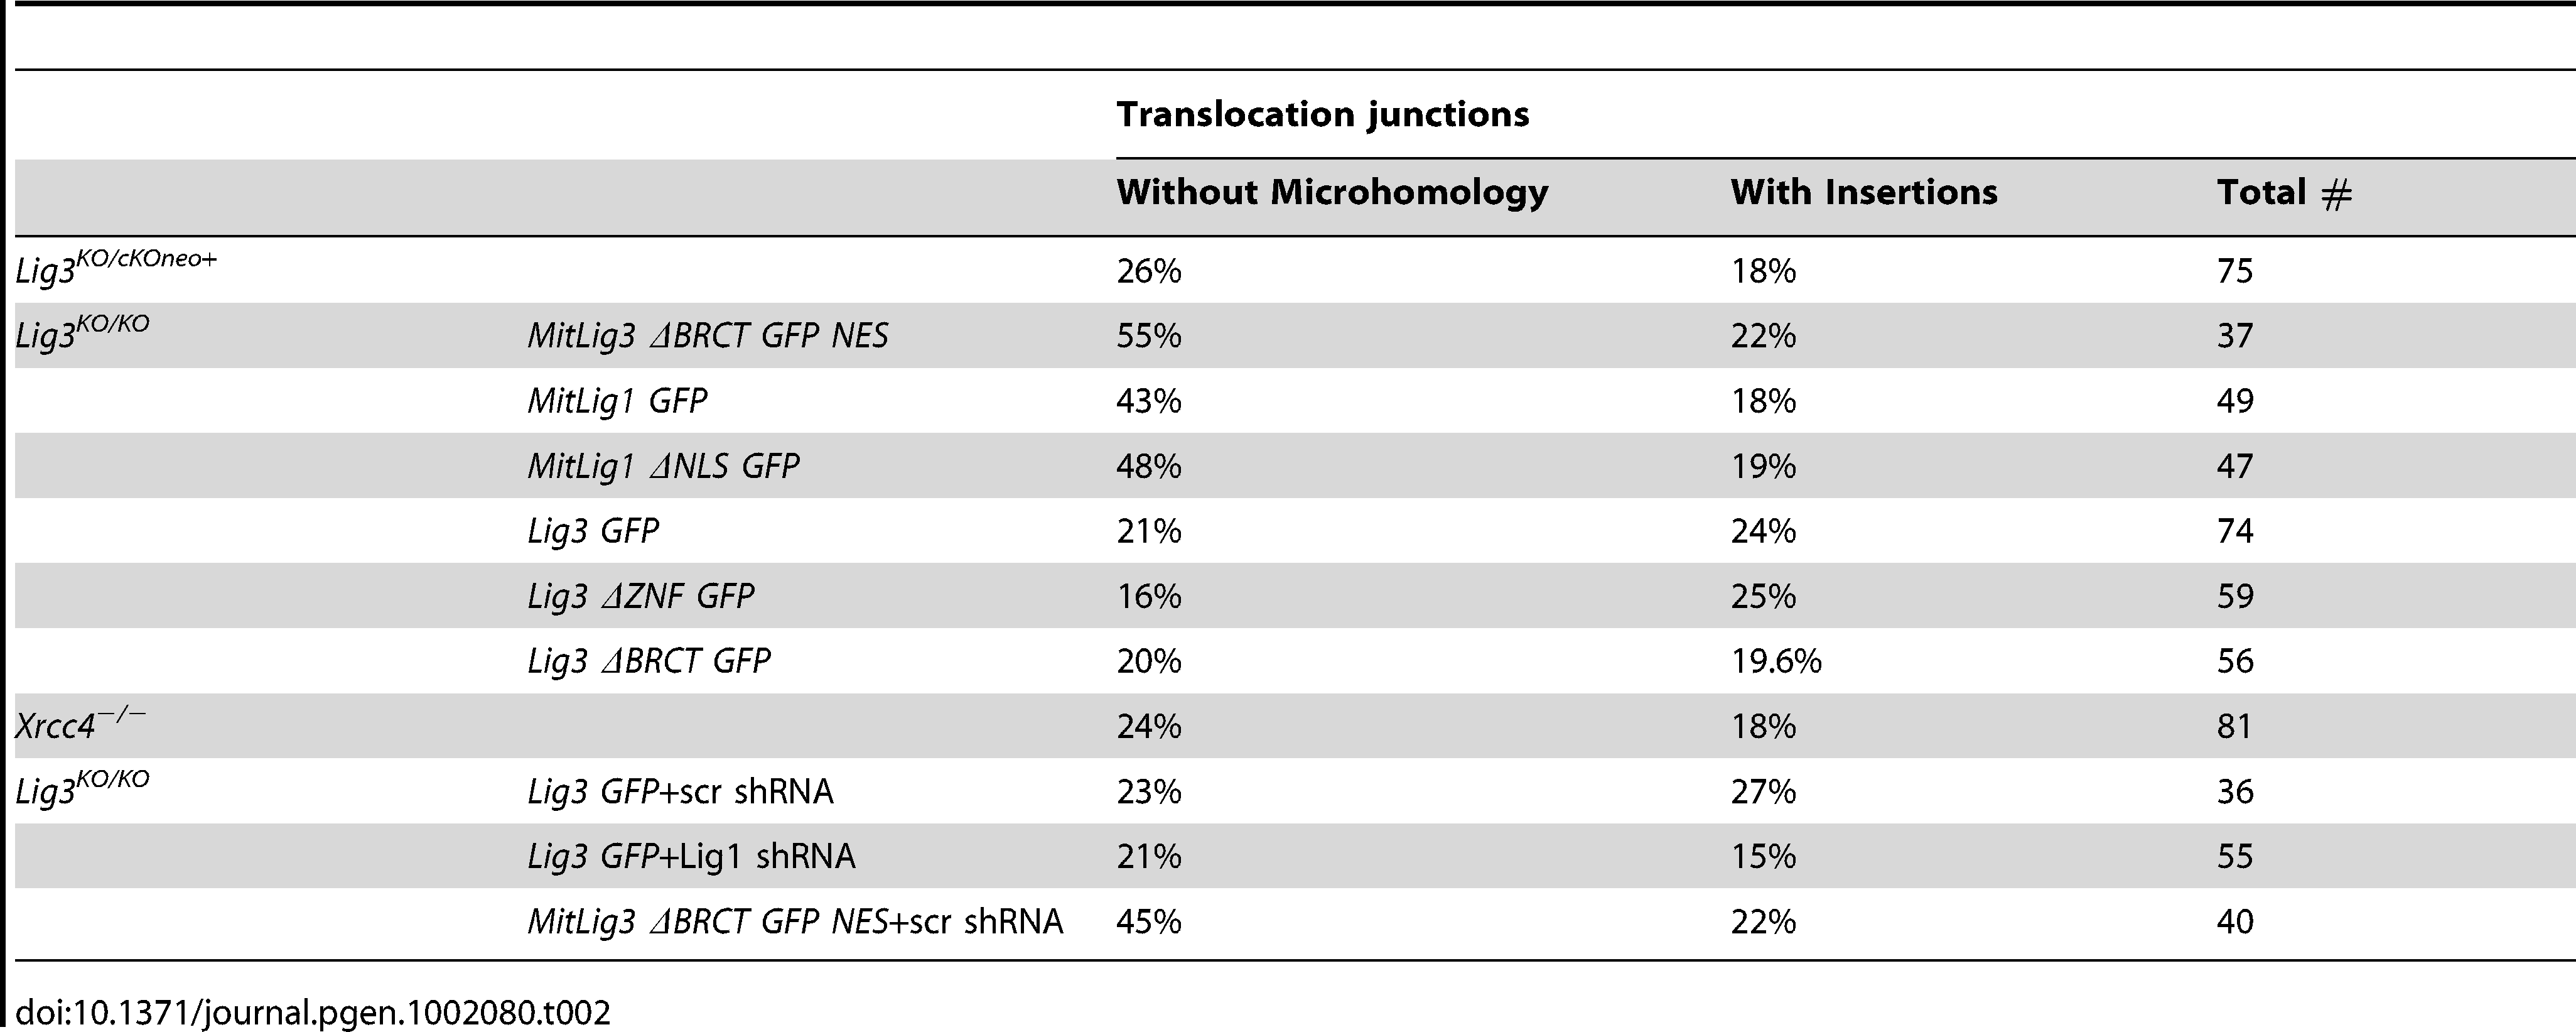 Percent of translocation junctions without microhomology and with insertions.